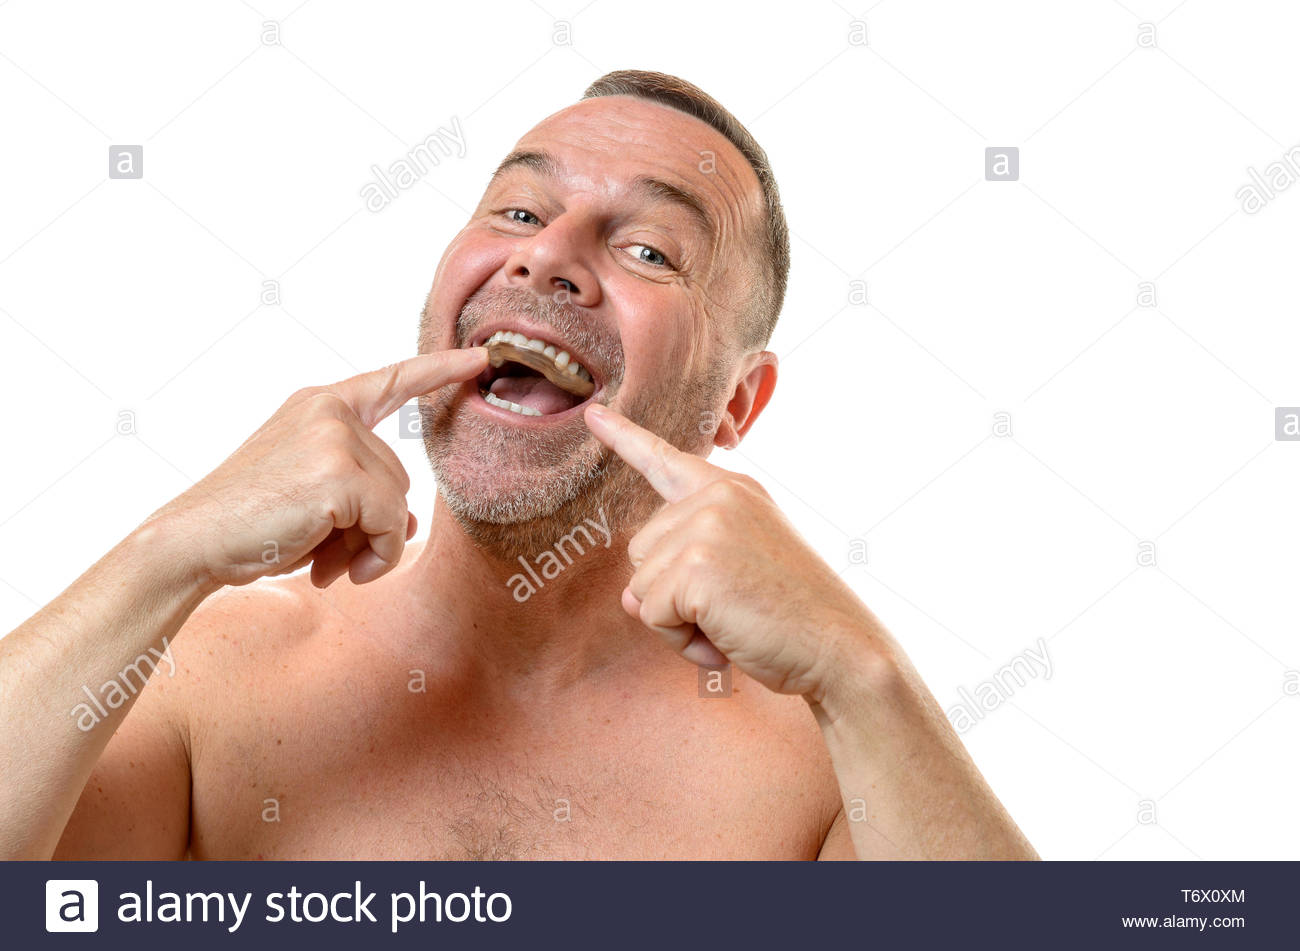 Bare chested man points to teeth with two fingers - Stock Image